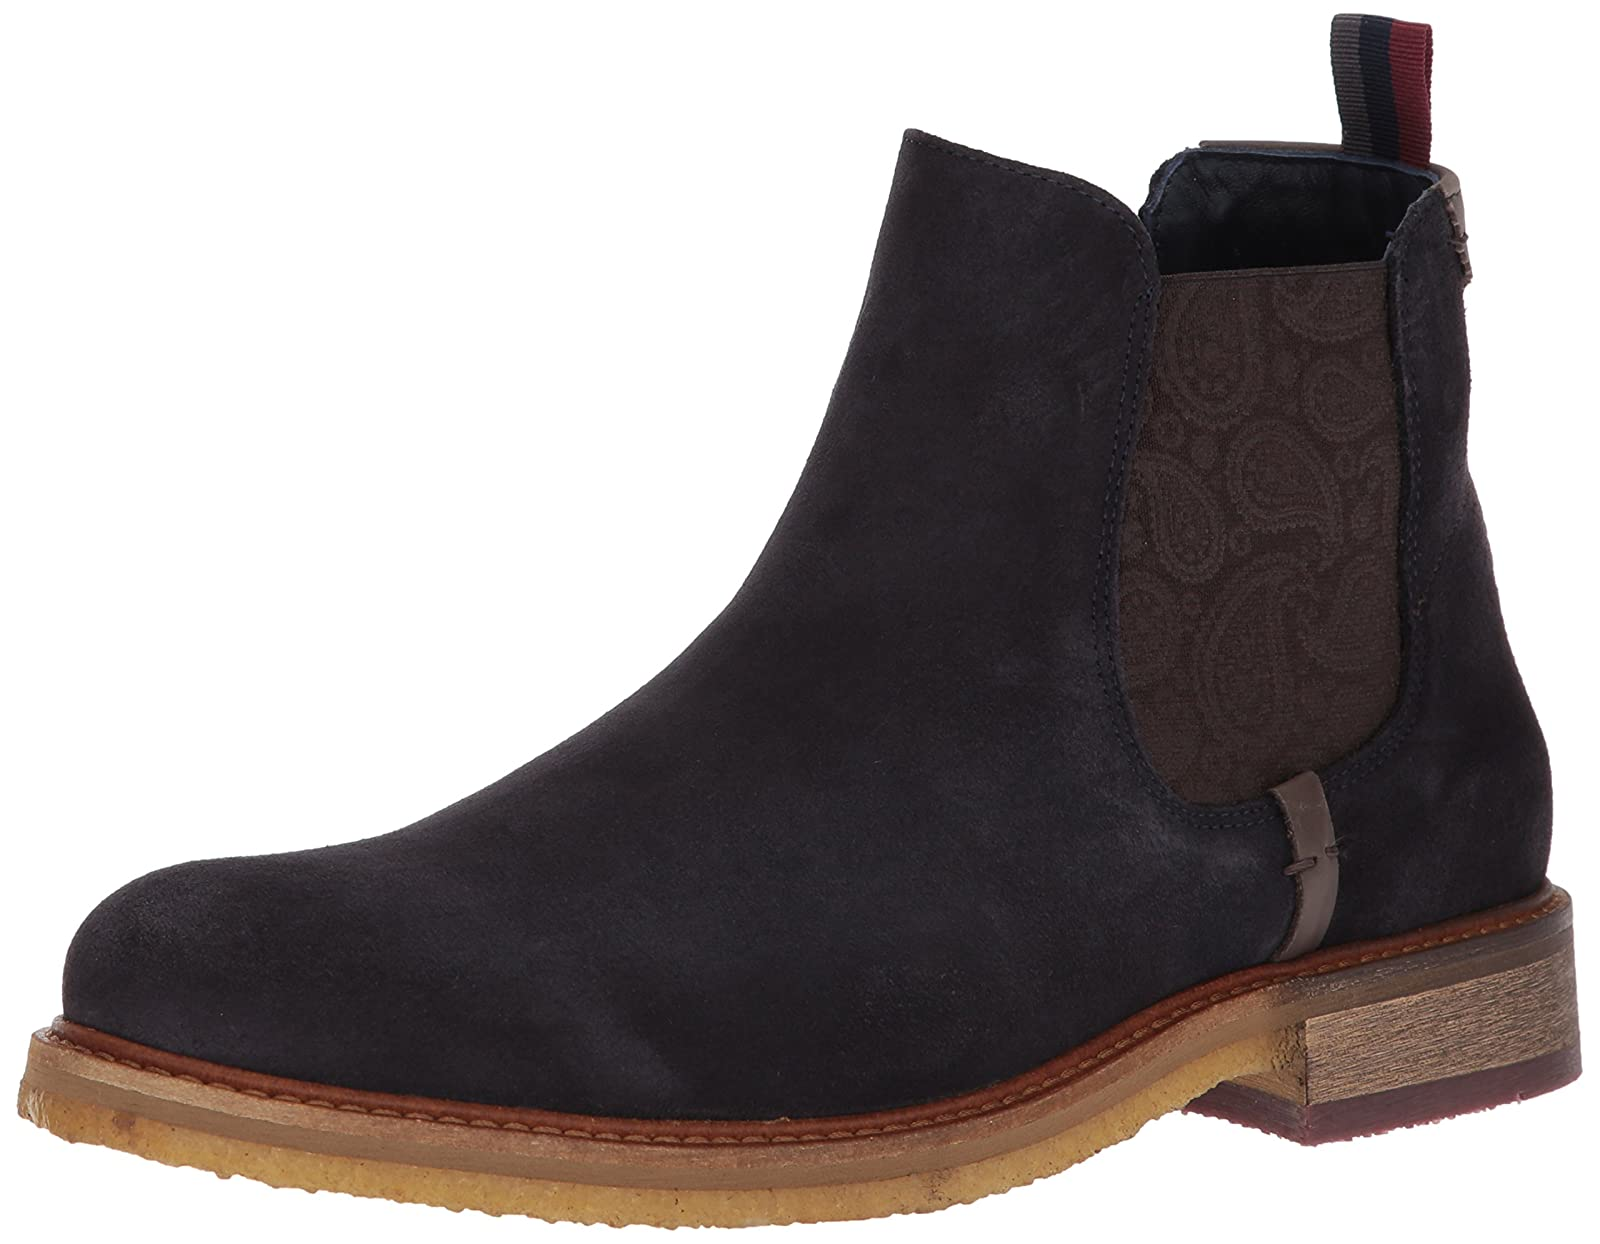 Ted Baker Men's Bronzo Chelsea Boot 12 M US - 1